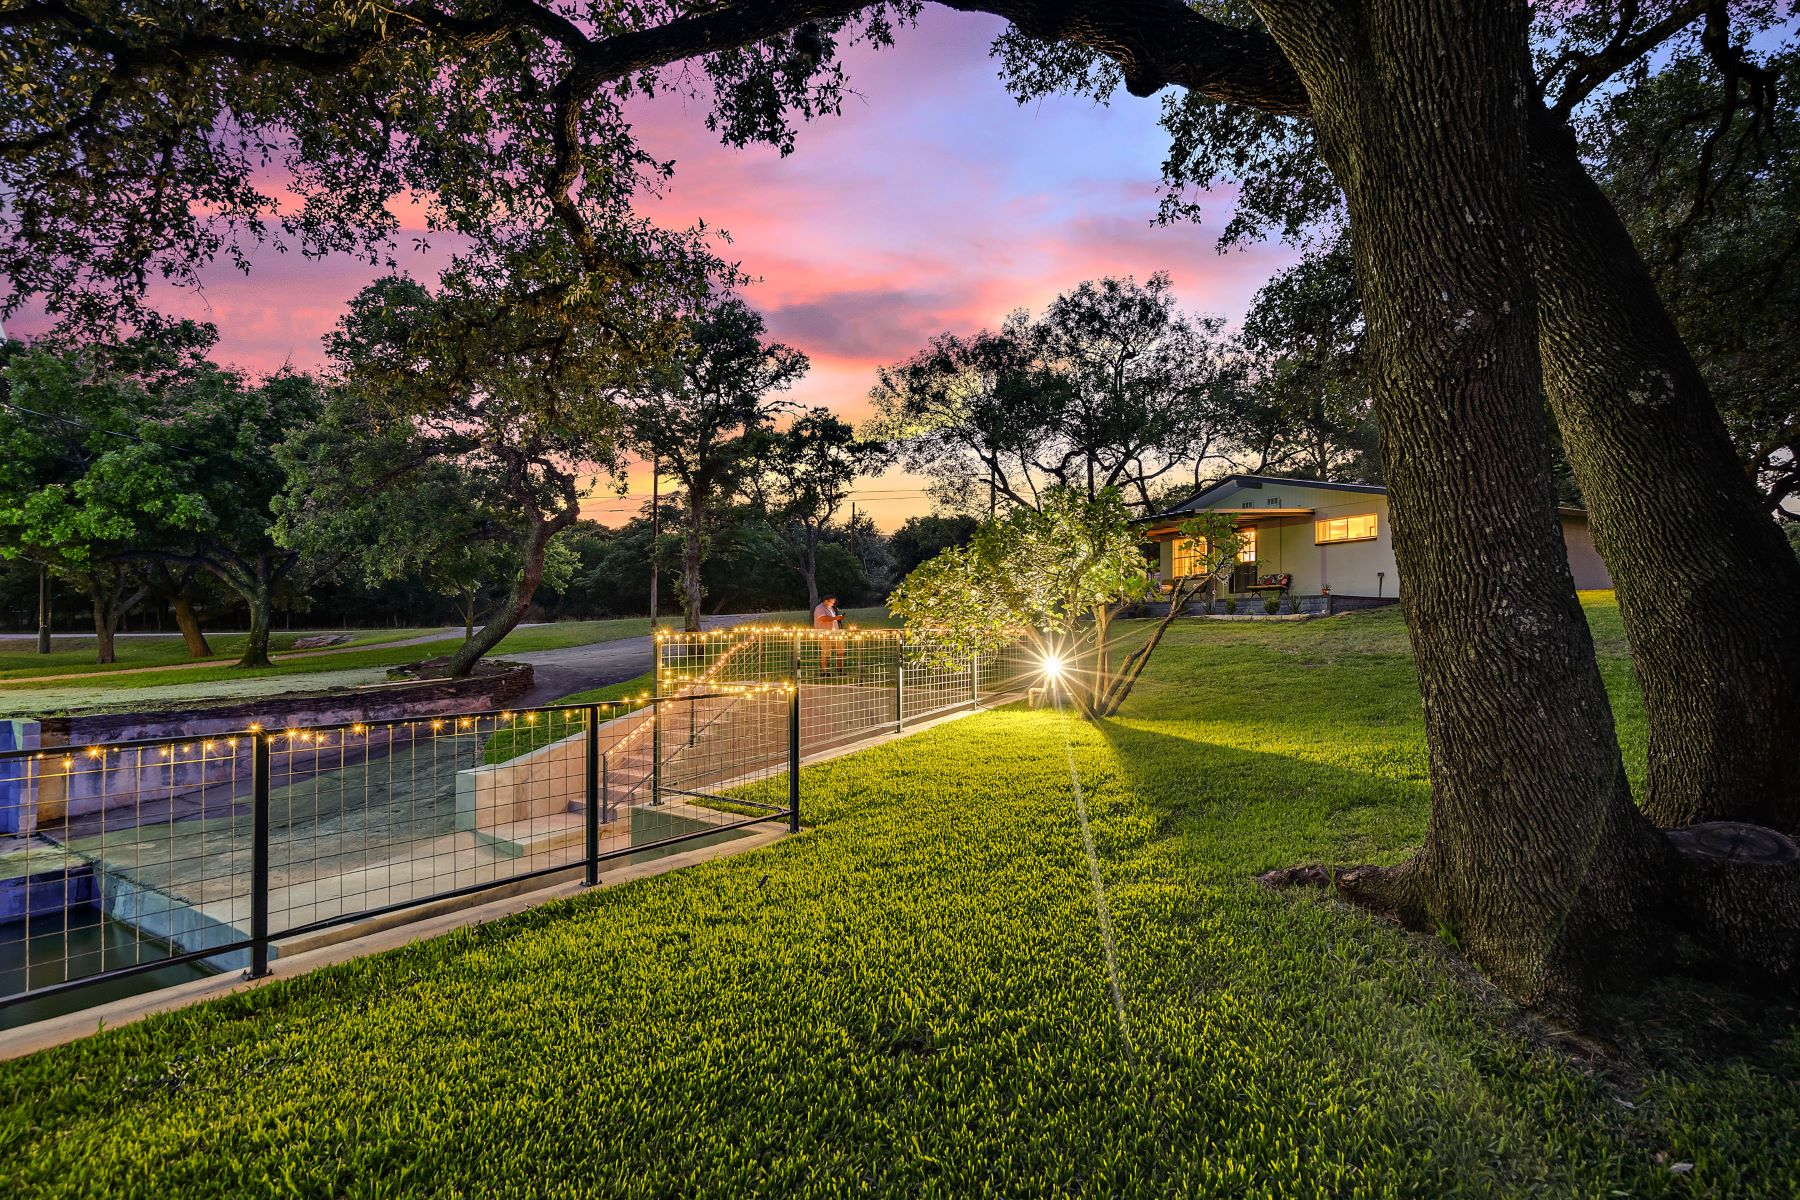 Single Family Homes for Sale at Charming Home Yards from Lake LBJ 158 Winding Way Llano, Texas 78643 United States